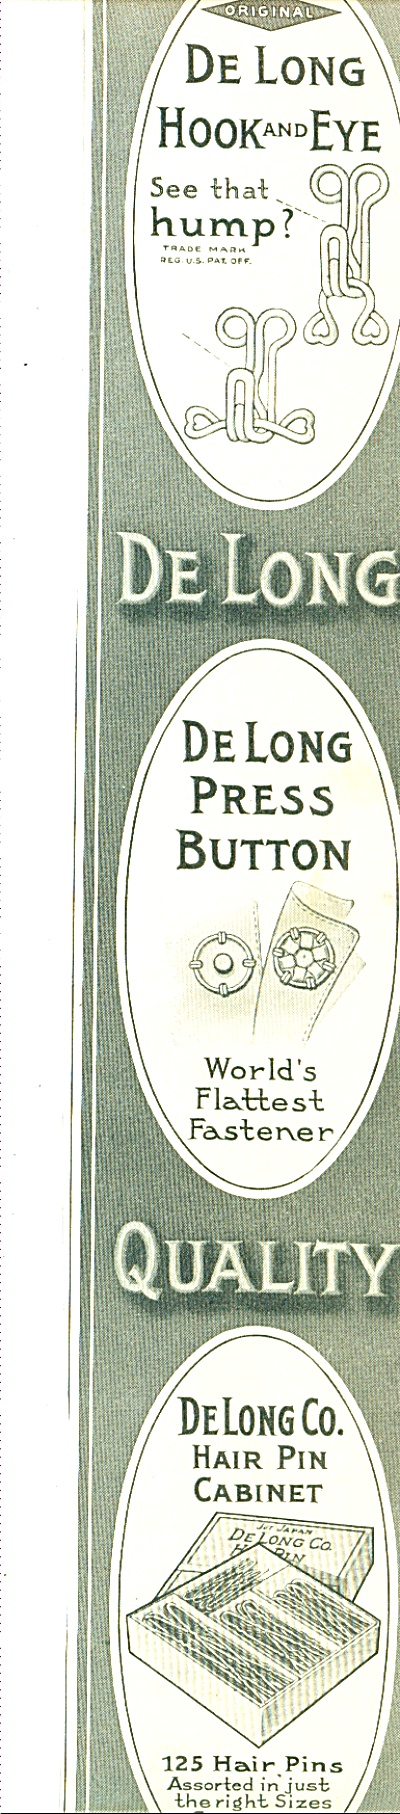 The Delong Hook And Eye Company Ad 1914